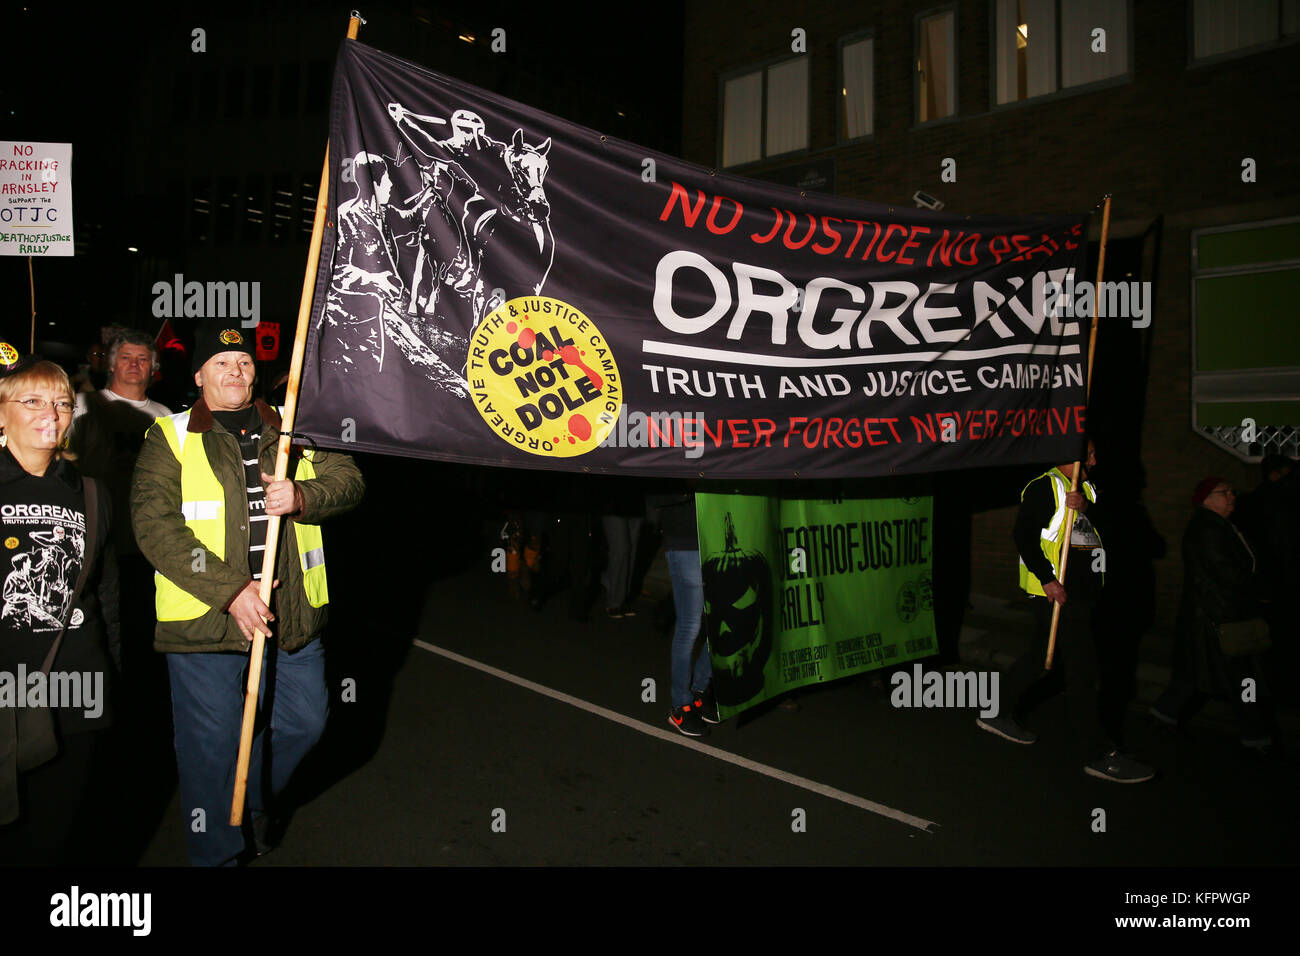 Sheffield, UK. 31st Oct, 2017. The Orgreave Truth and Justice Campaign 'Death of Justice Rally' marking - Stock Image